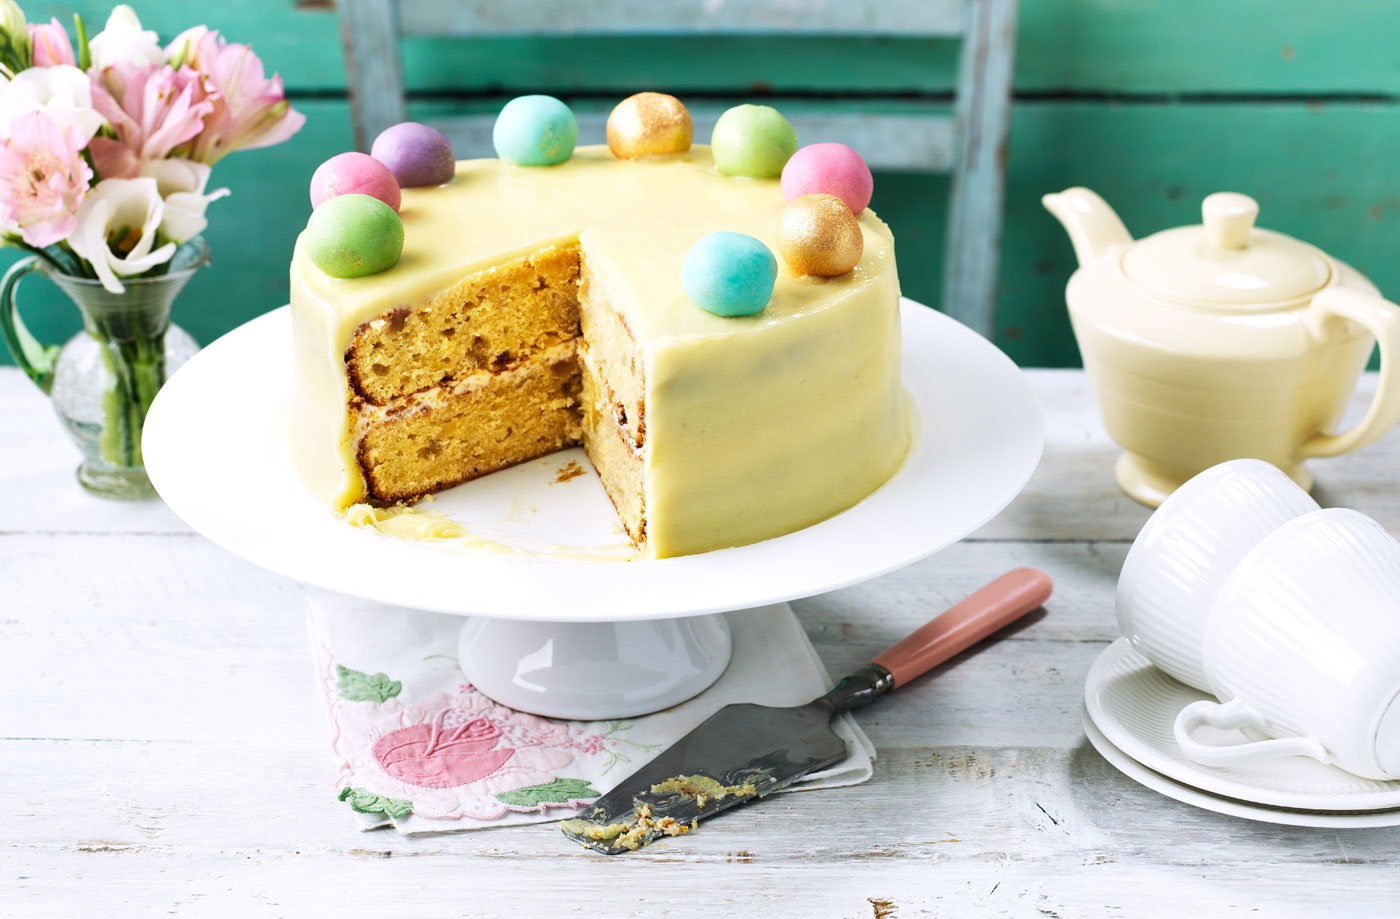 Lemon, ginger and almond simnel-style cake